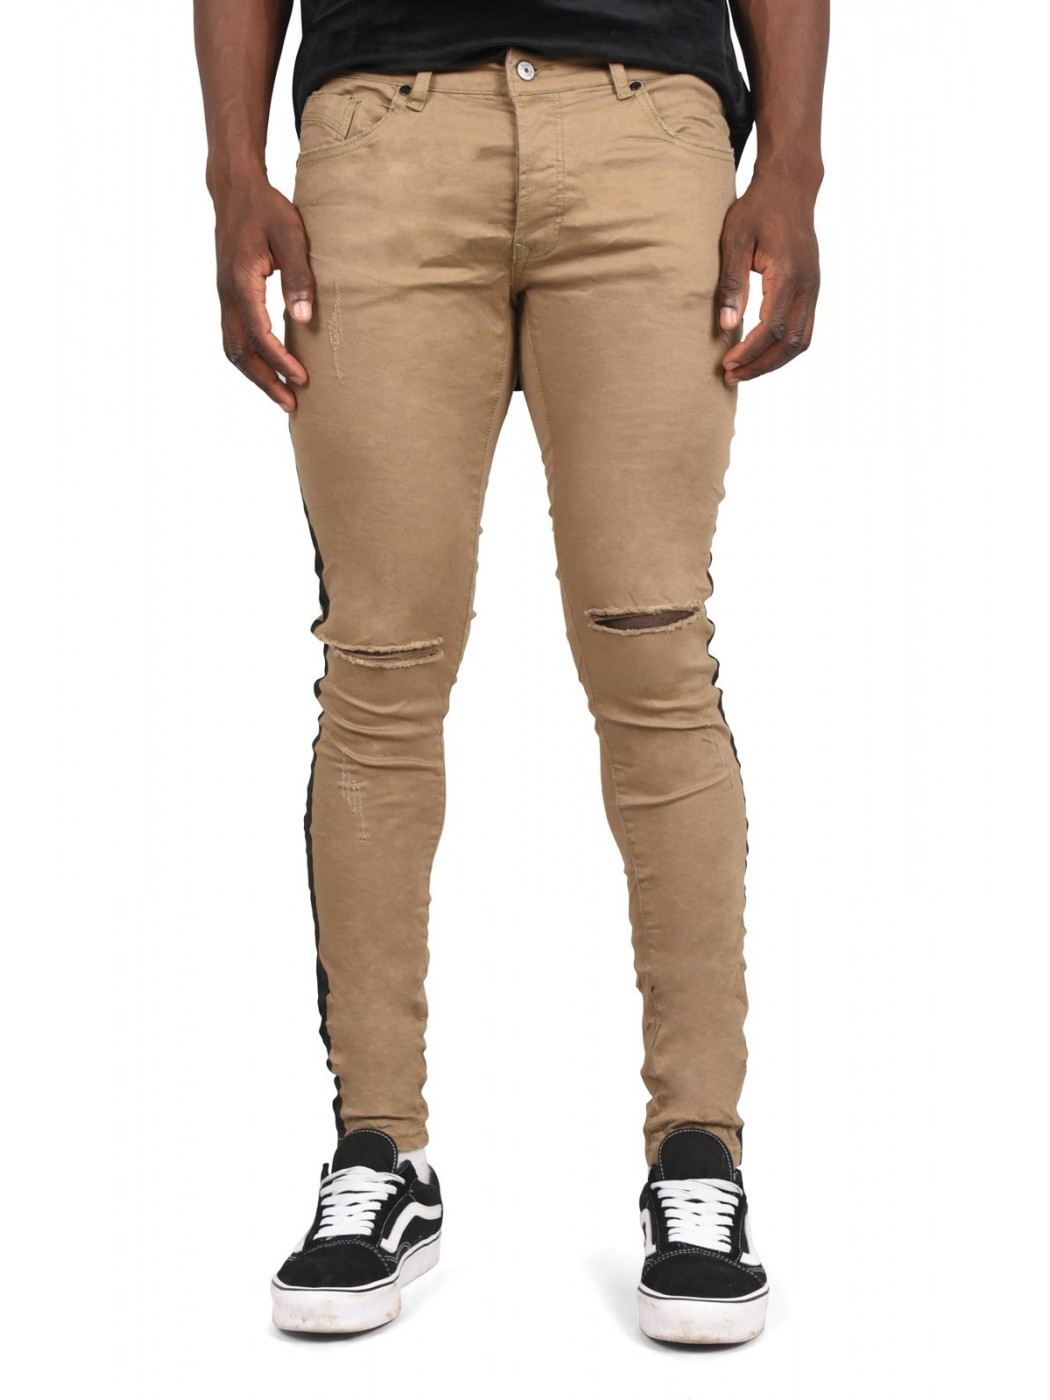 Jean Skinny Bandes Lat Rales Homme Project X Paris